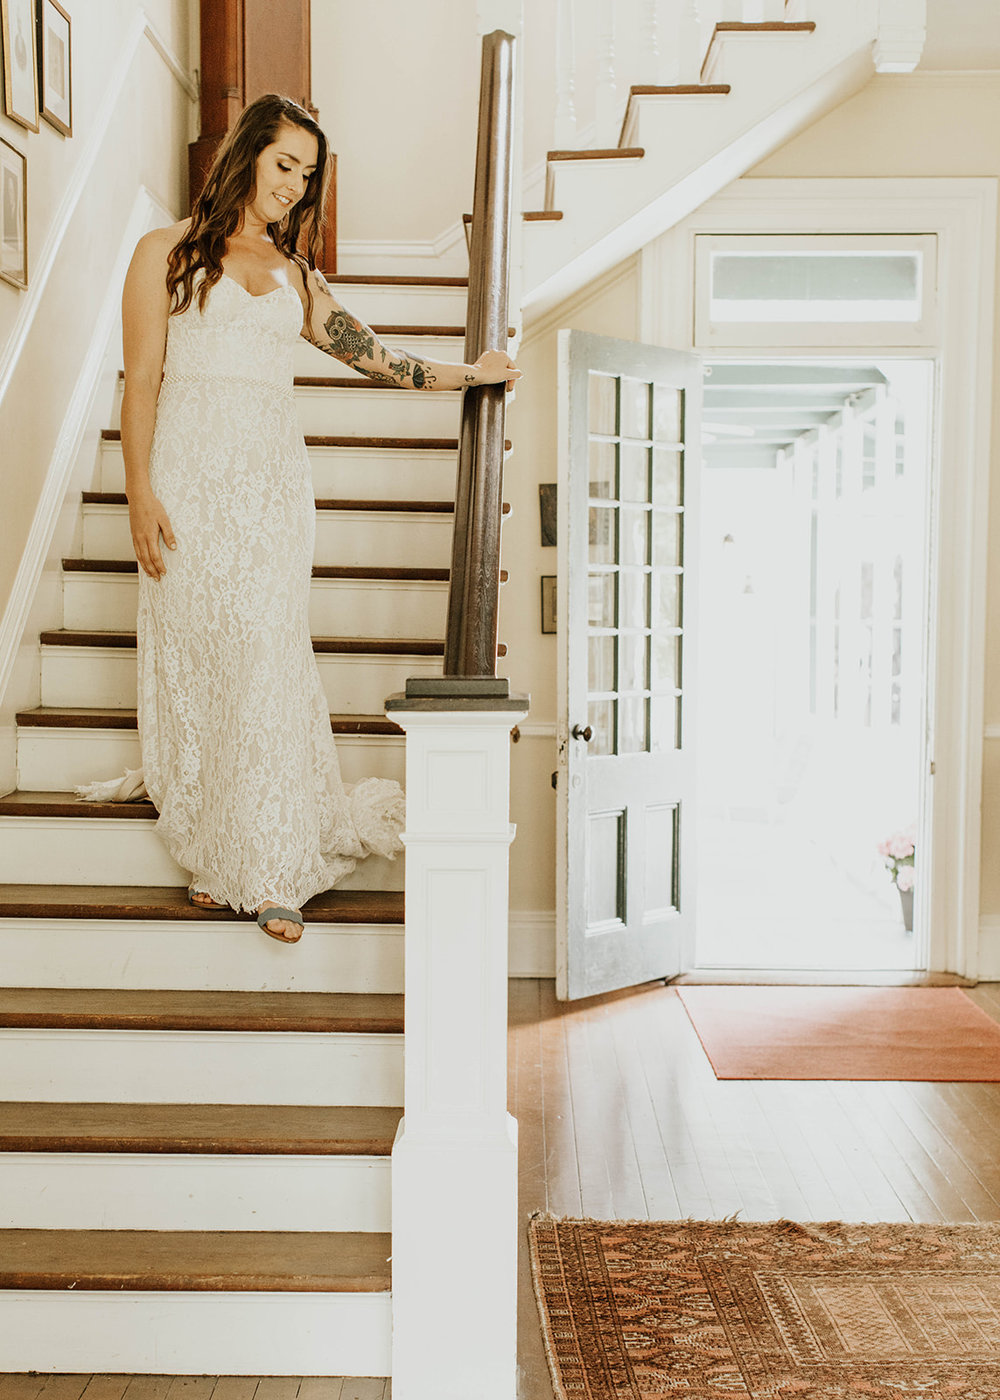 savannah-bridal-shop-i-and-b-bride-april-ti-adora-ella-belle-jacksonville-bride-lyndsey-anne-photography-savannah-bridal-boutique-savannah-wedding-gowns-7.jpg